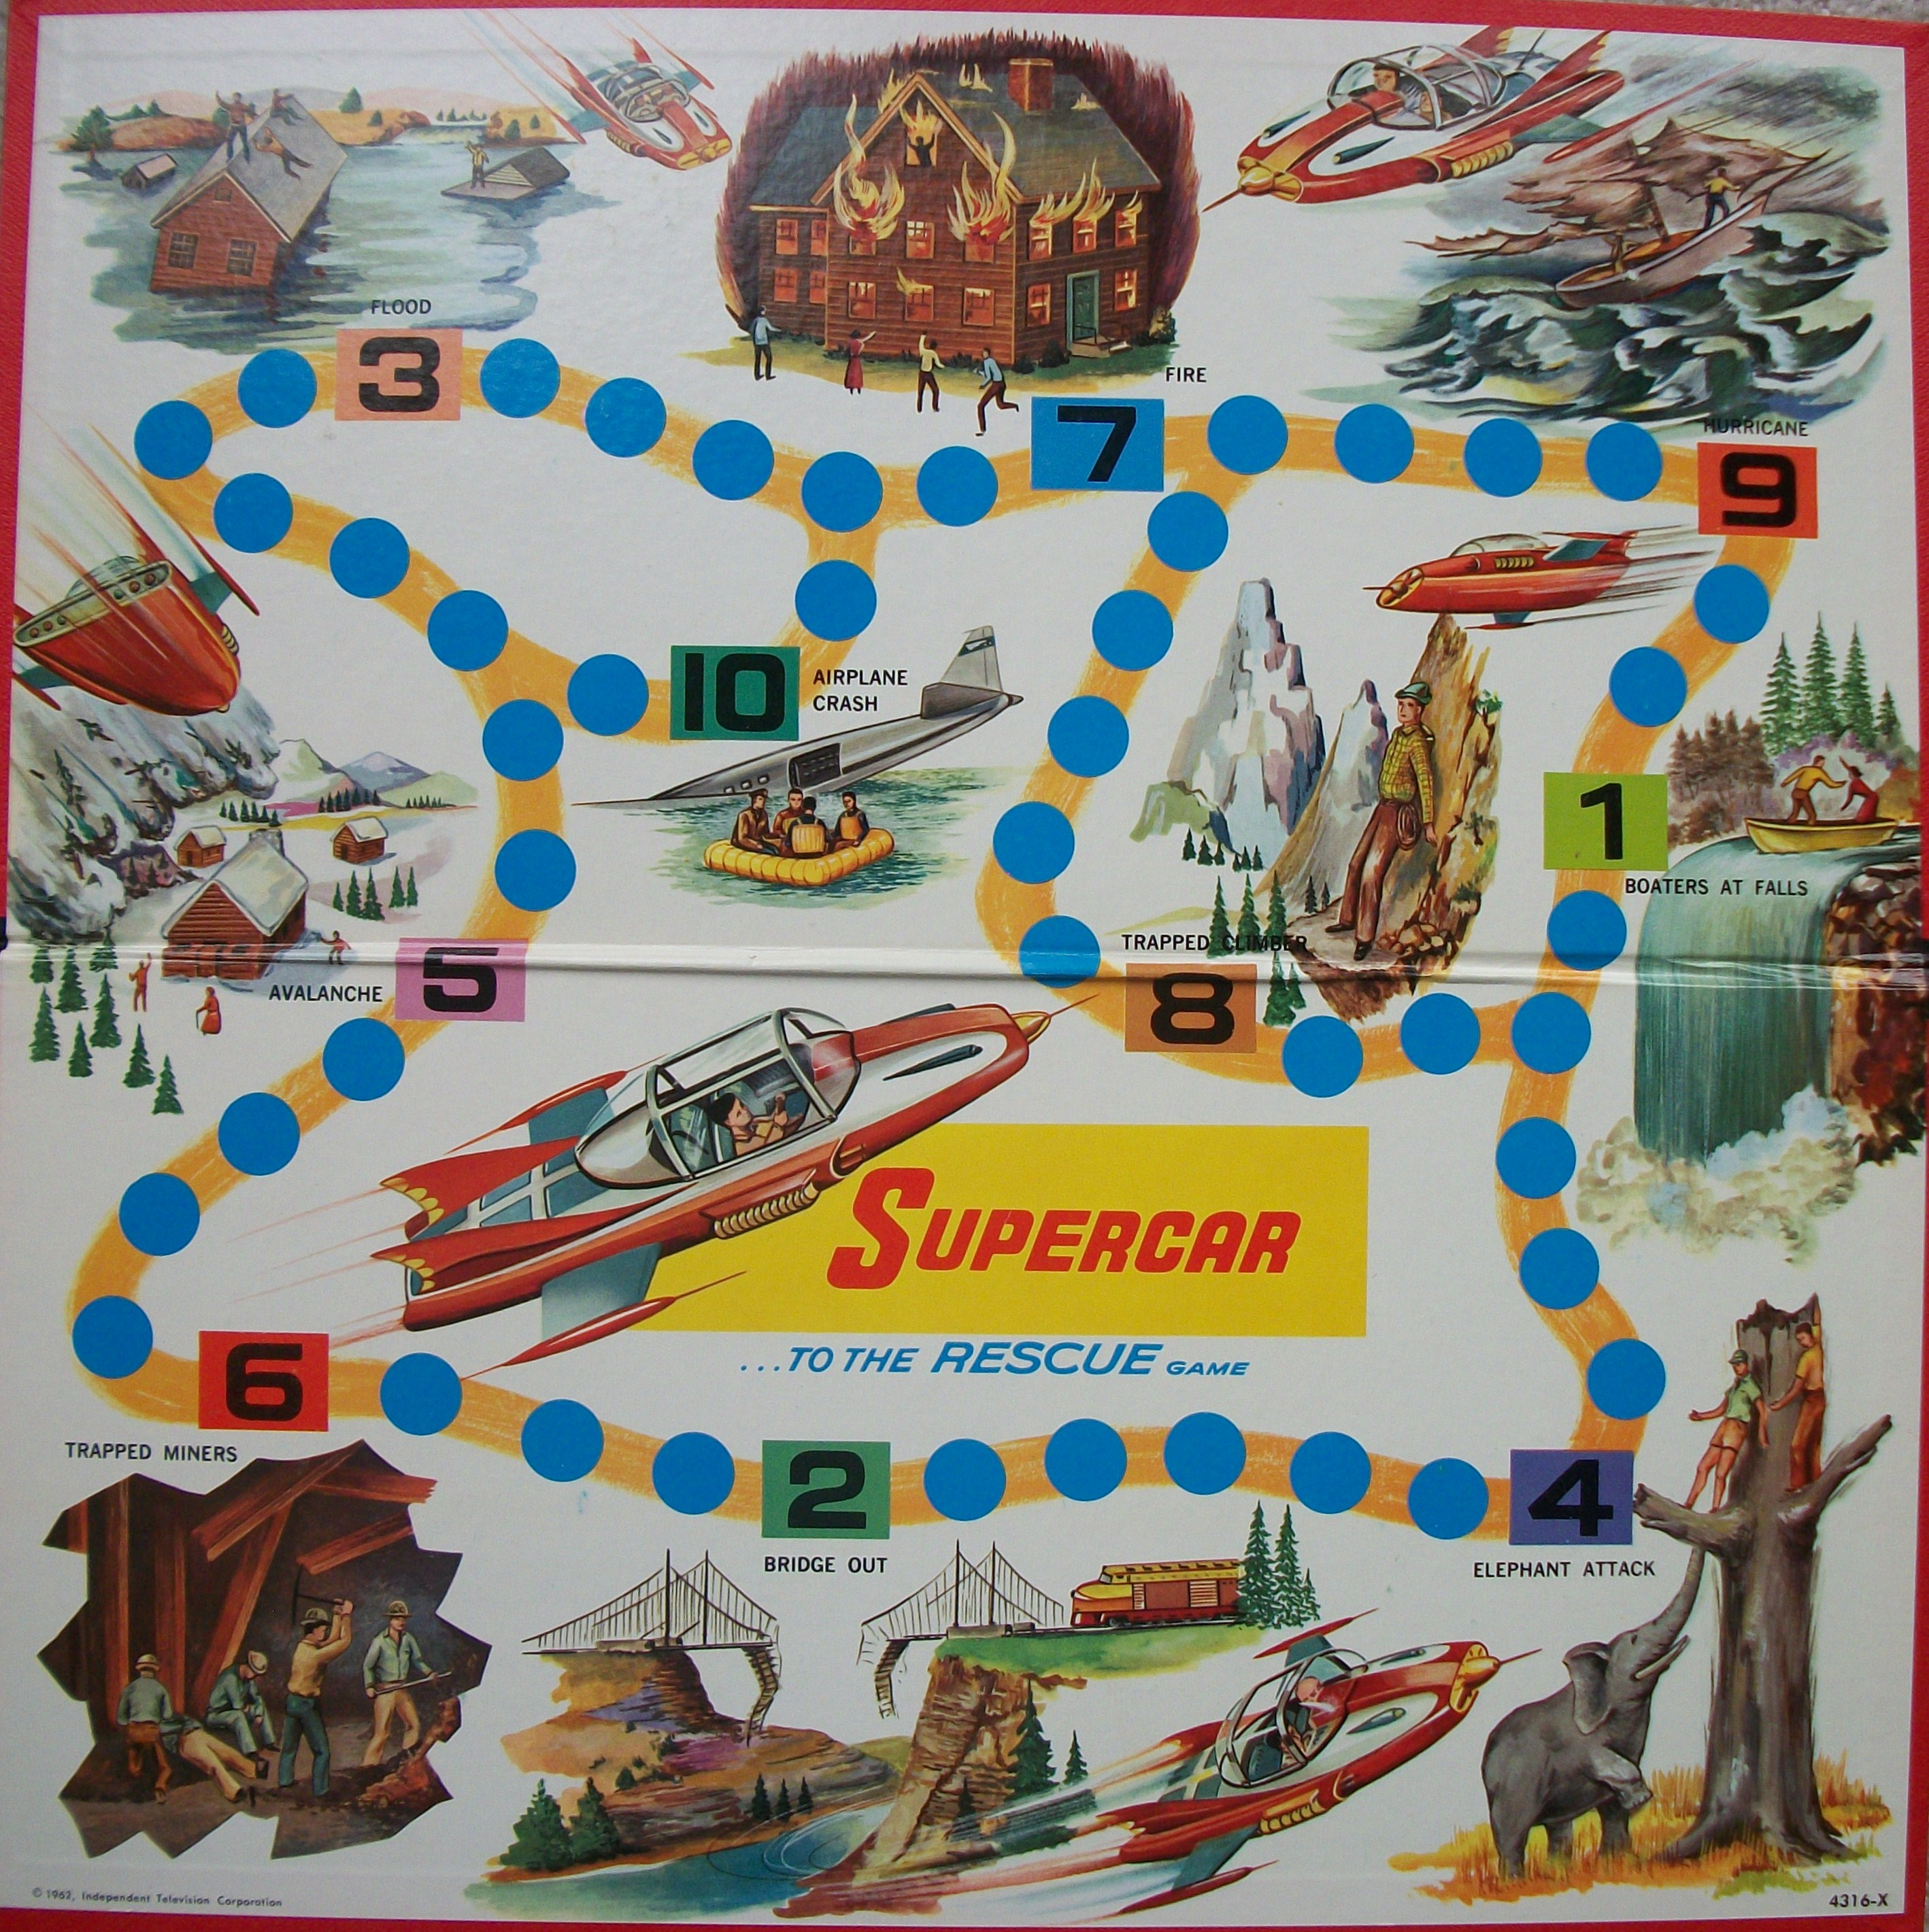 1962-Supercar-game-board.jpg